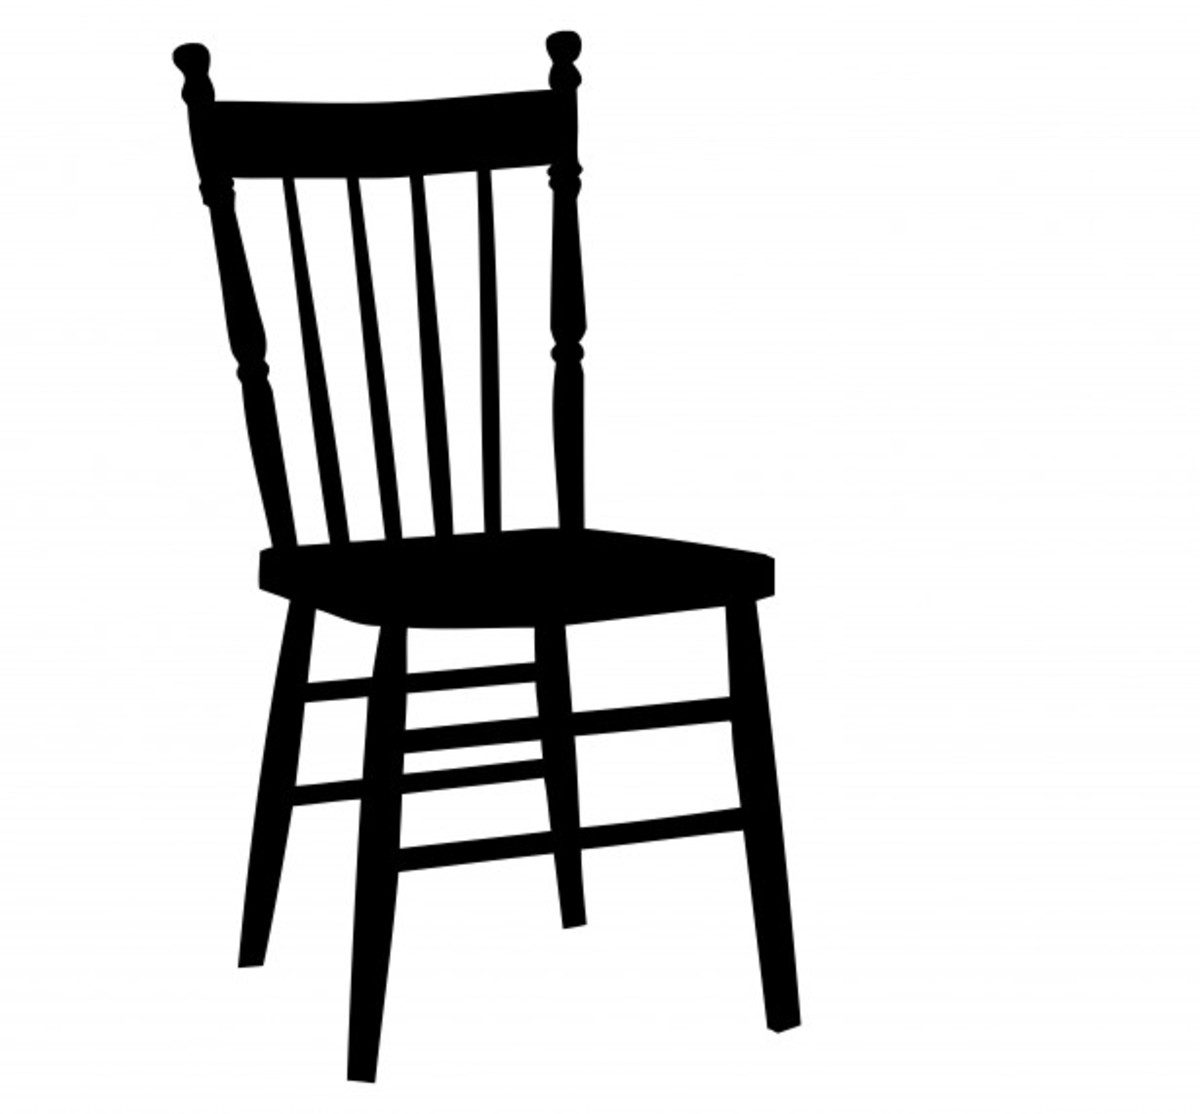 Chair Clipart by Karen Arnold